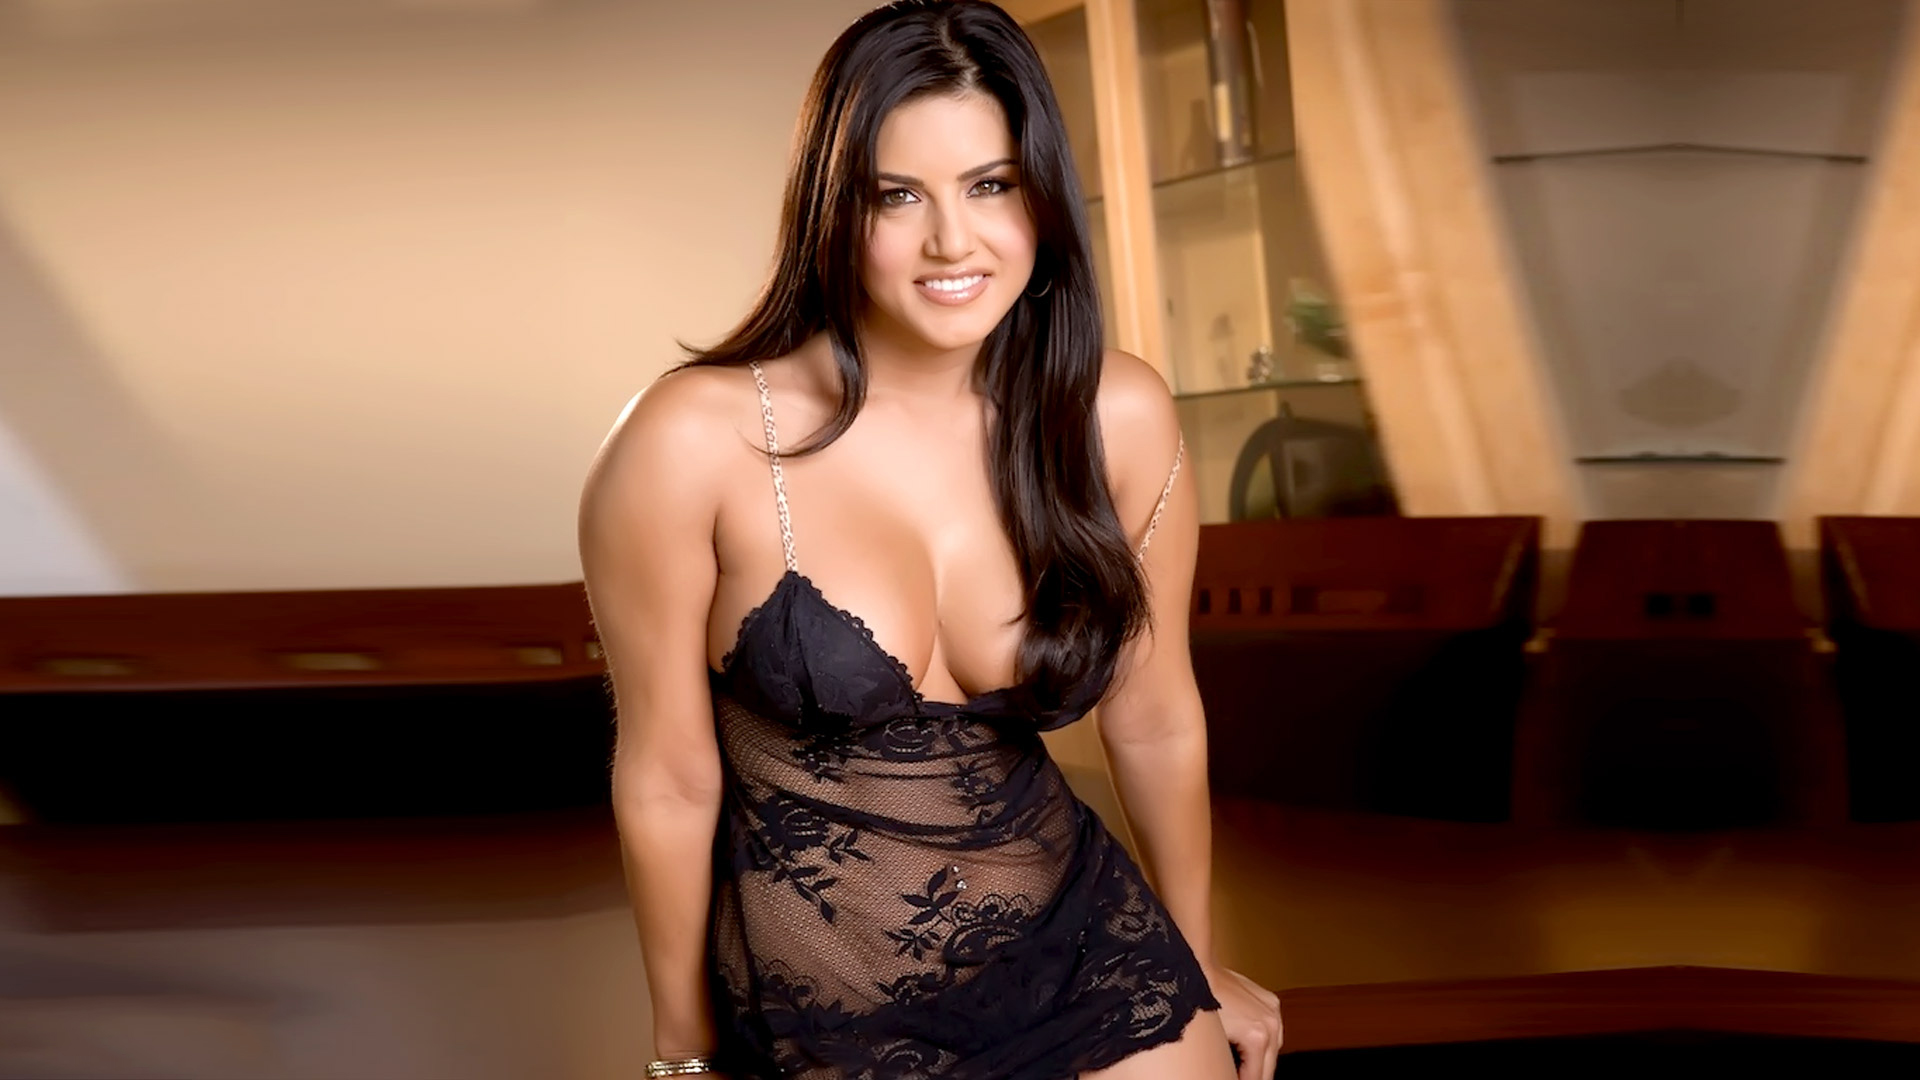 sunny leone stunning cleavage and sizzling new photos • popopics